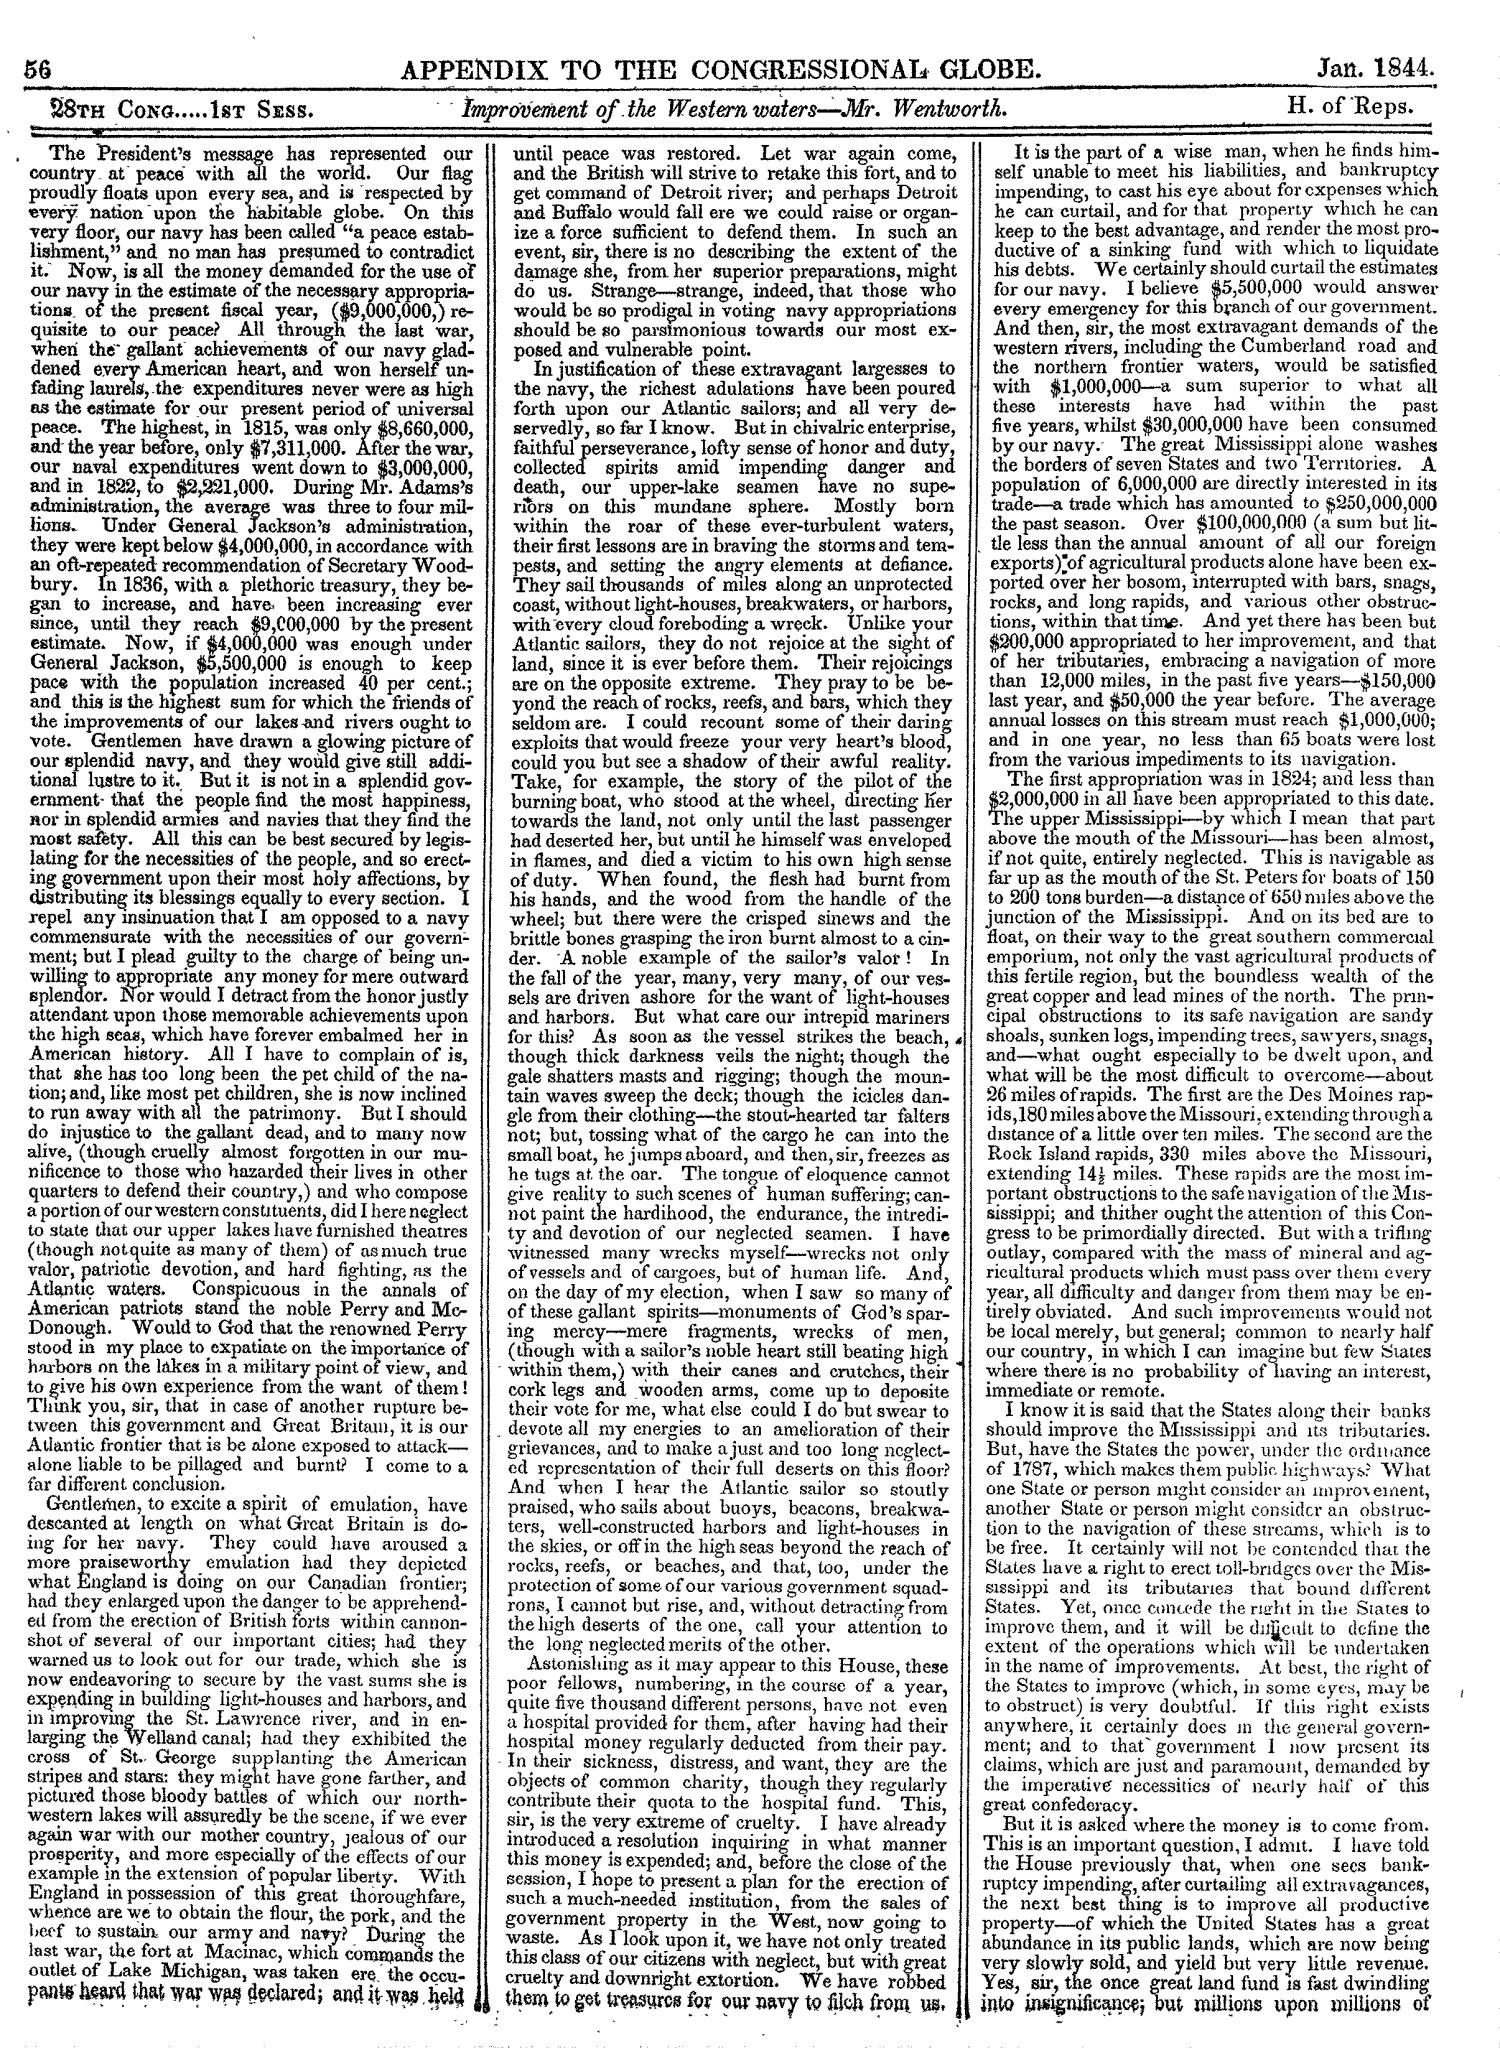 The Congressional Globe, Volume 13, Part 2: Twenty-Eighth Congress, First Session                                                                                                      56